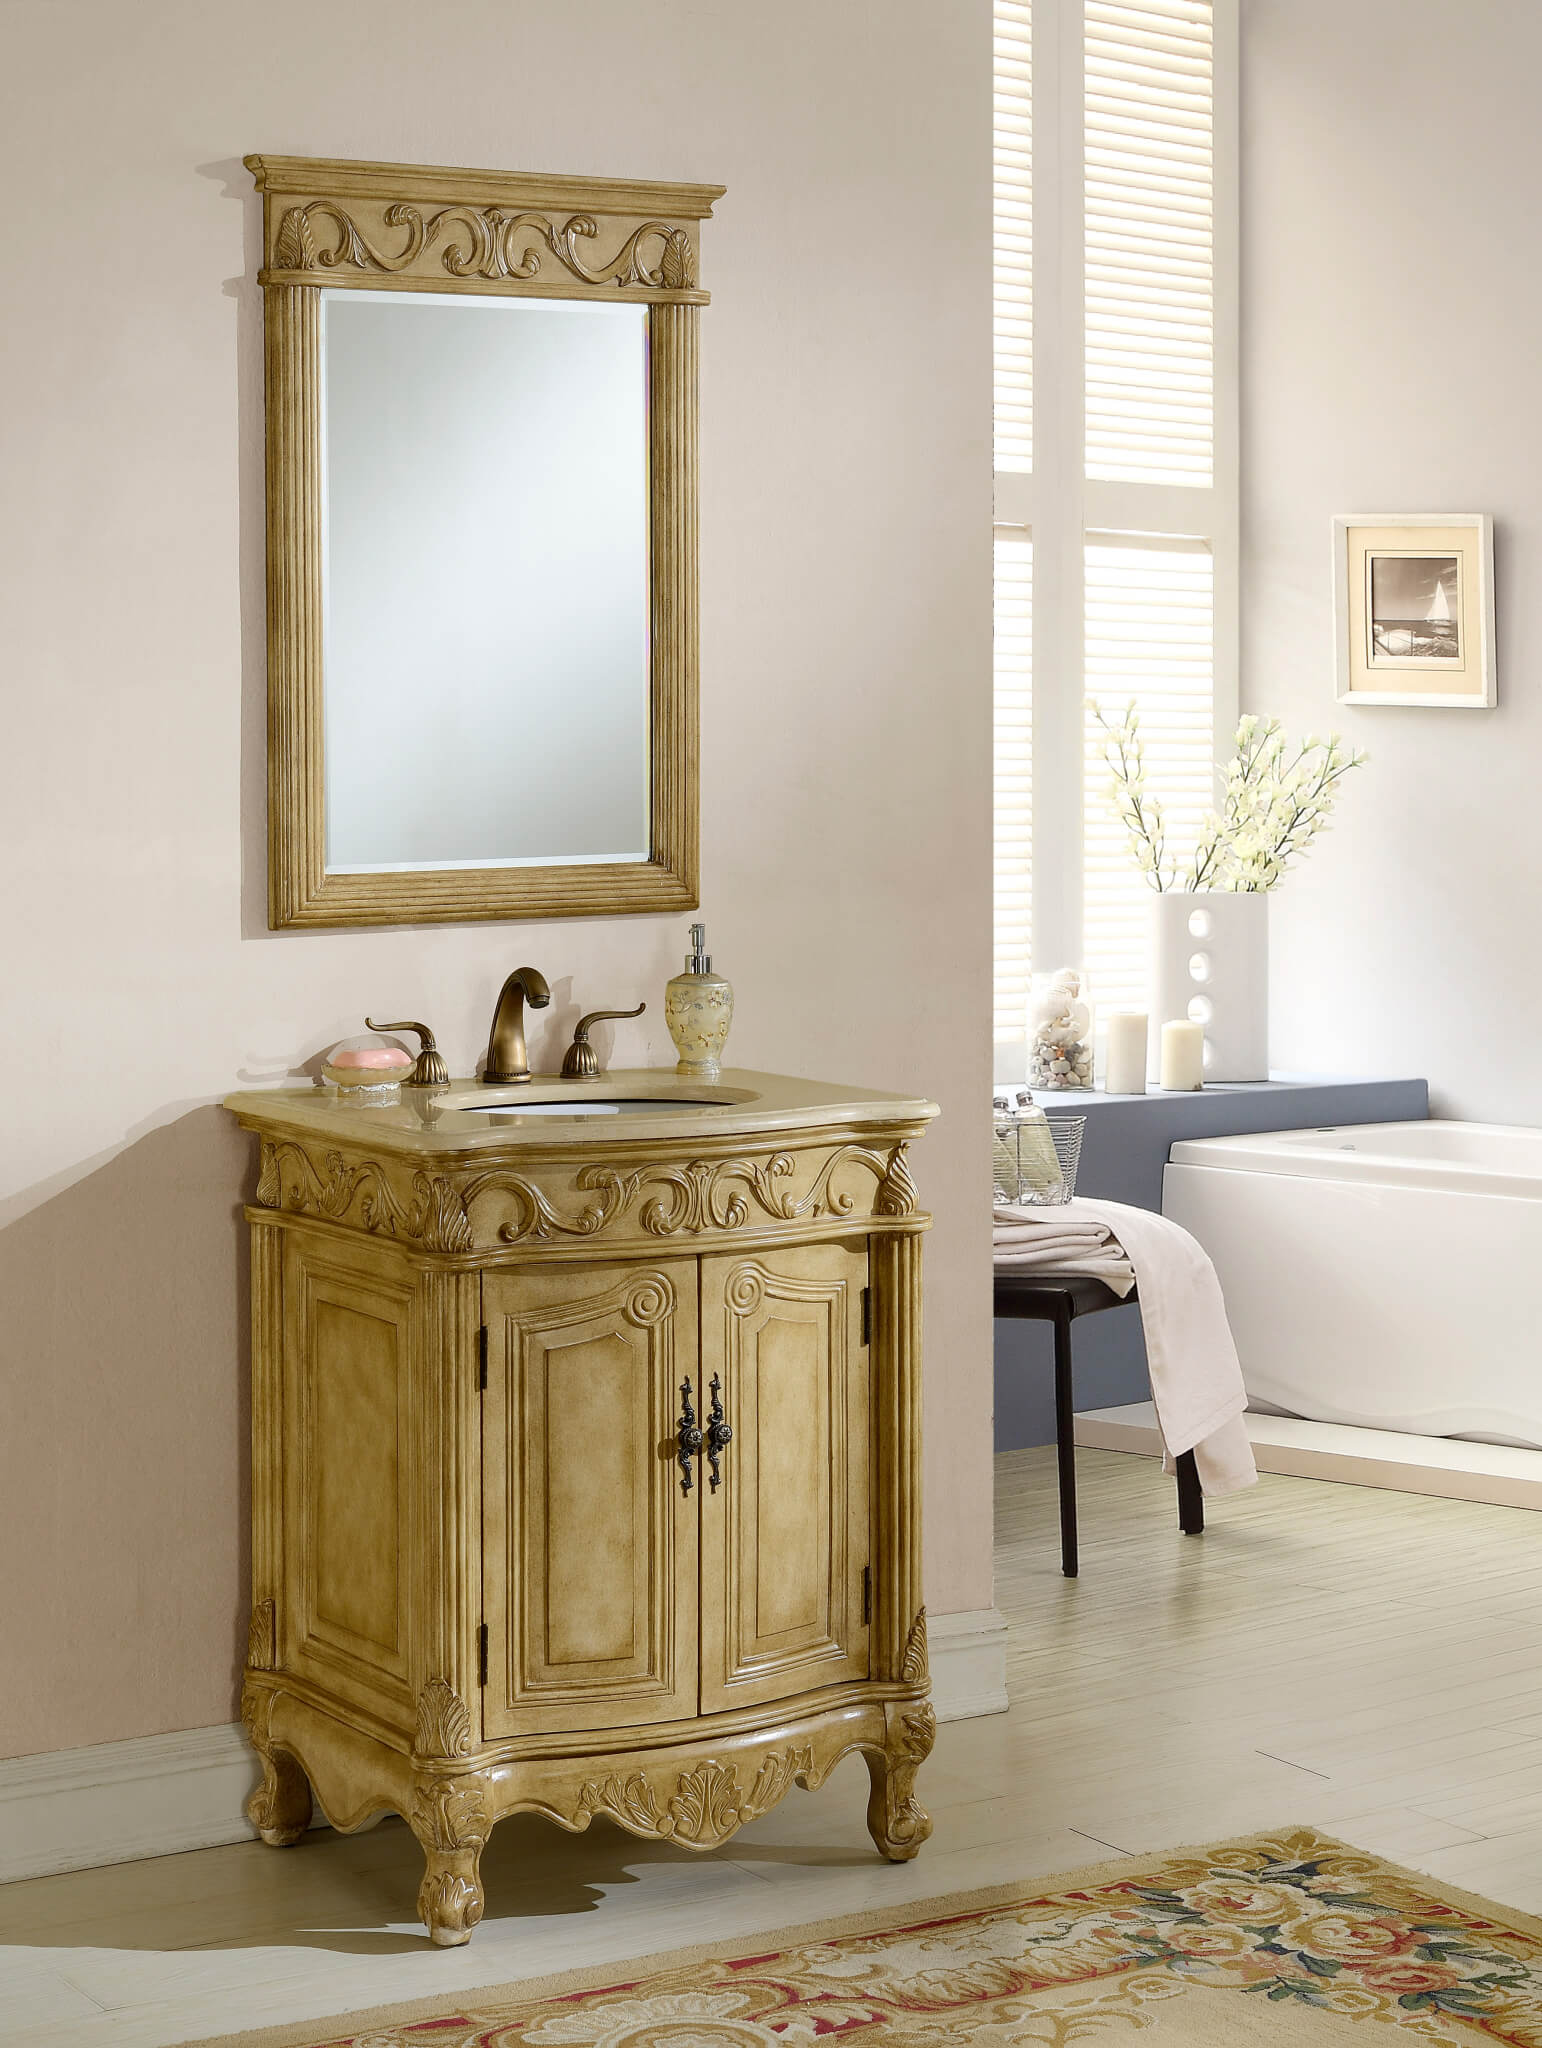 Tuscany bathroom vanity 28 images tuscany bathroom for J tribble bathroom vanities